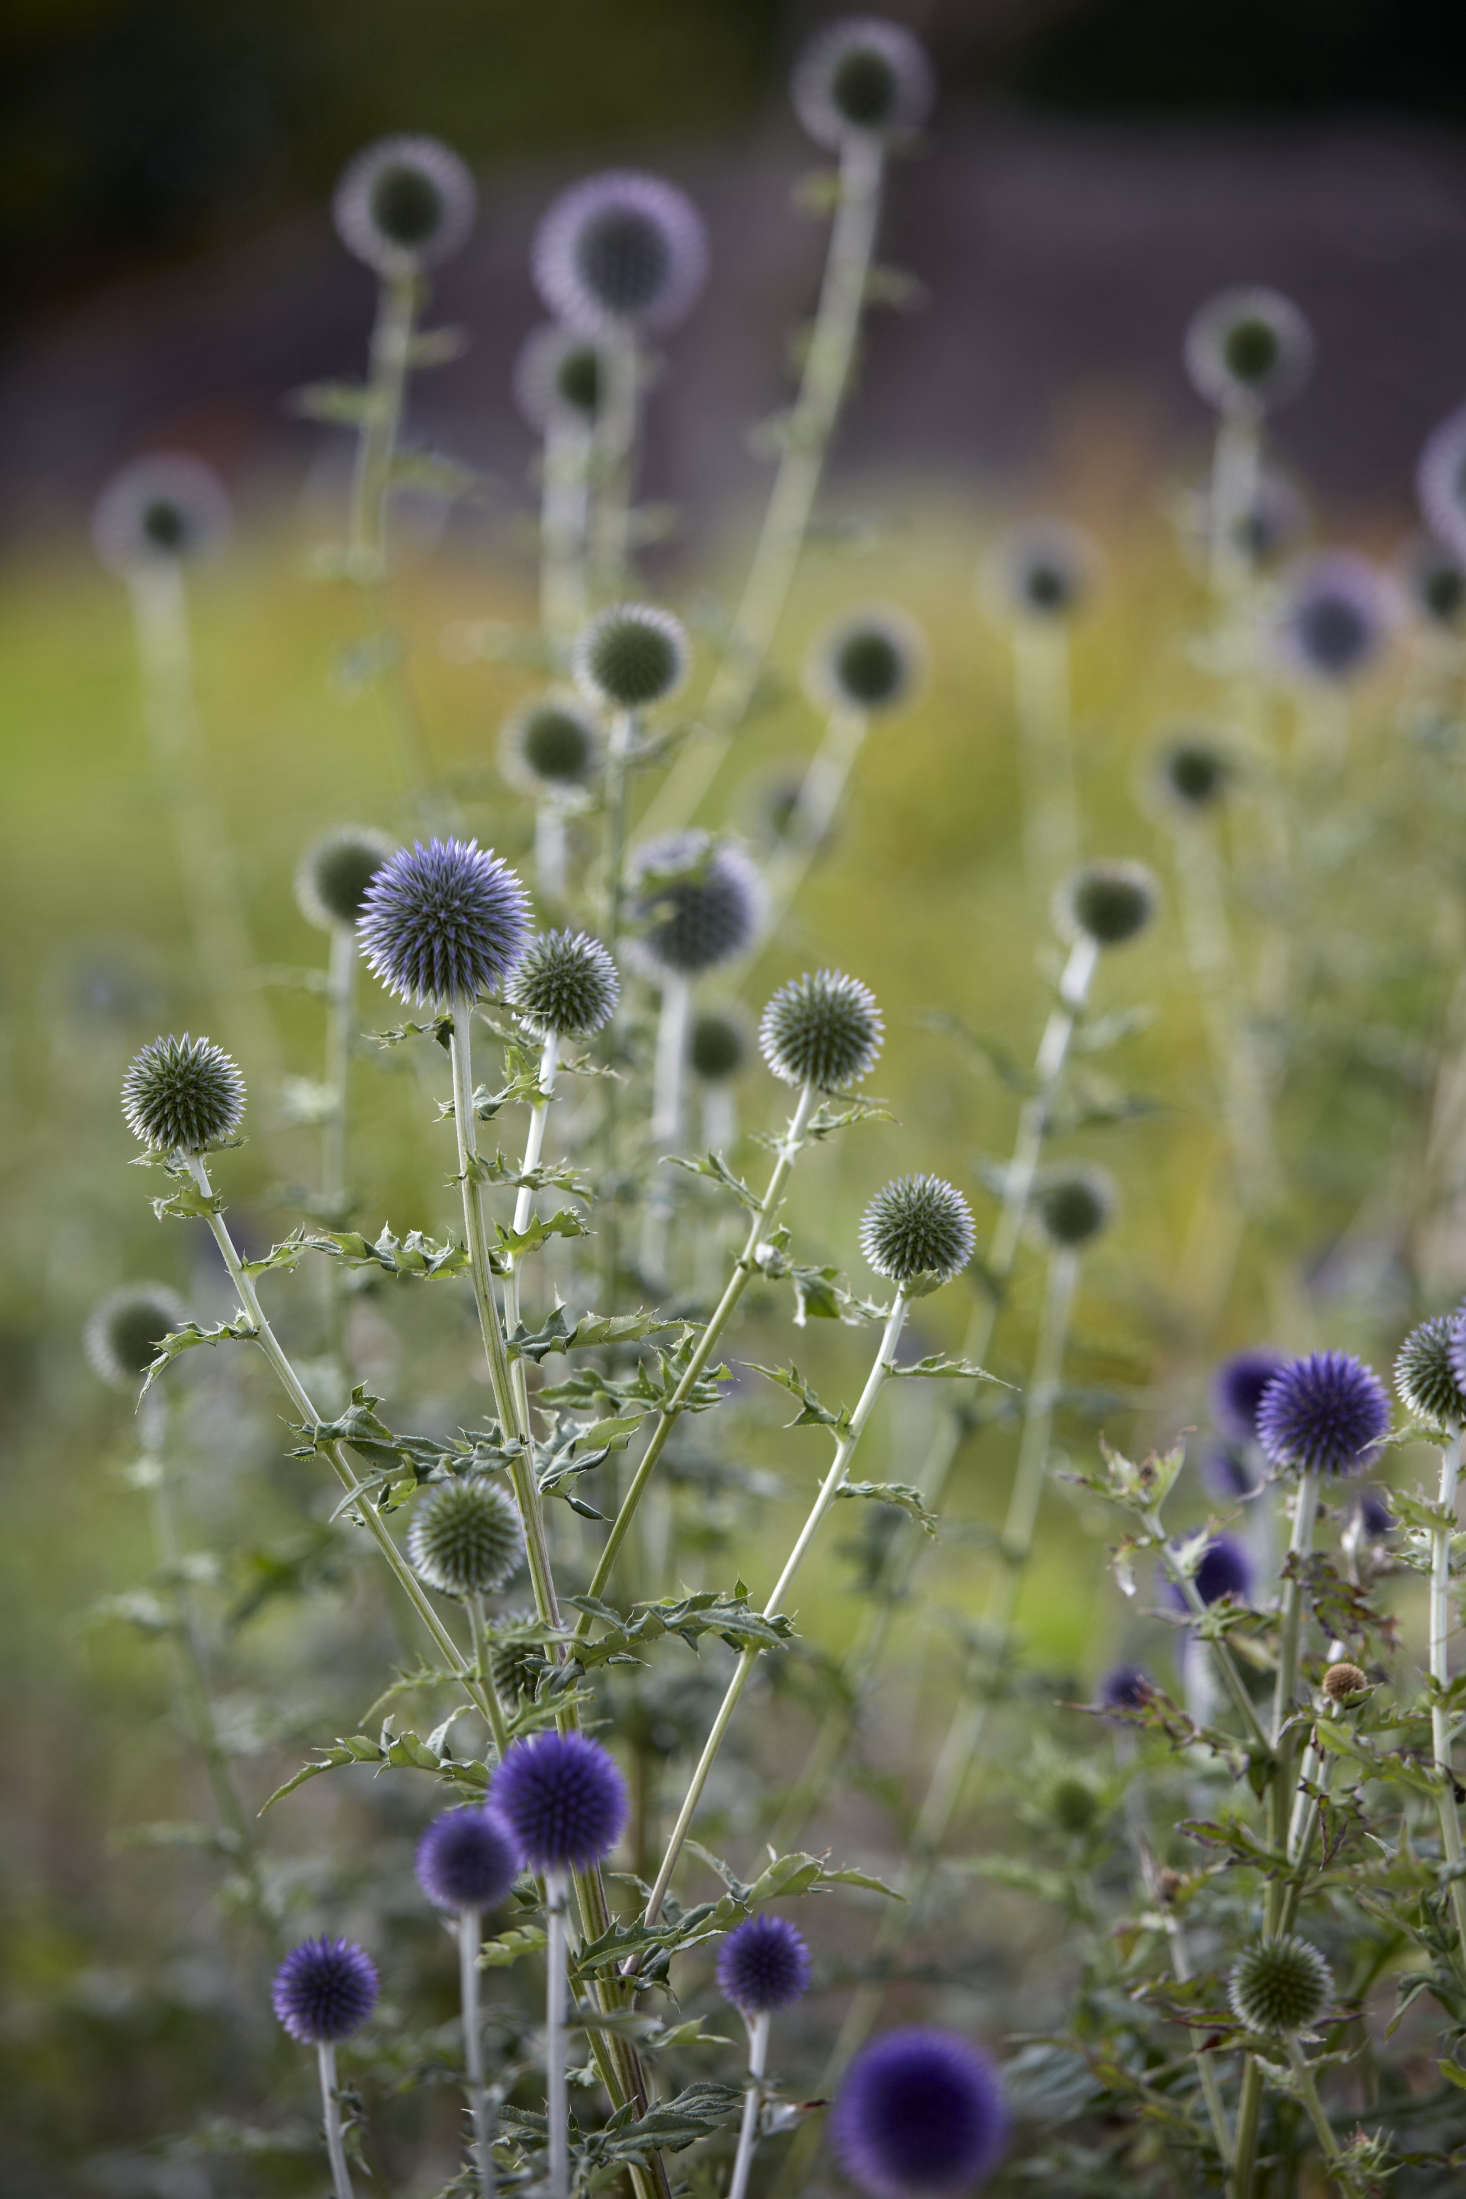 Globe thistle (Echinops sphaerocephalus)is a long-lasting cut flower. Photograph by Britt Willoughby Dyer, from Studio Visit: Electric Daisy Flower Farm.